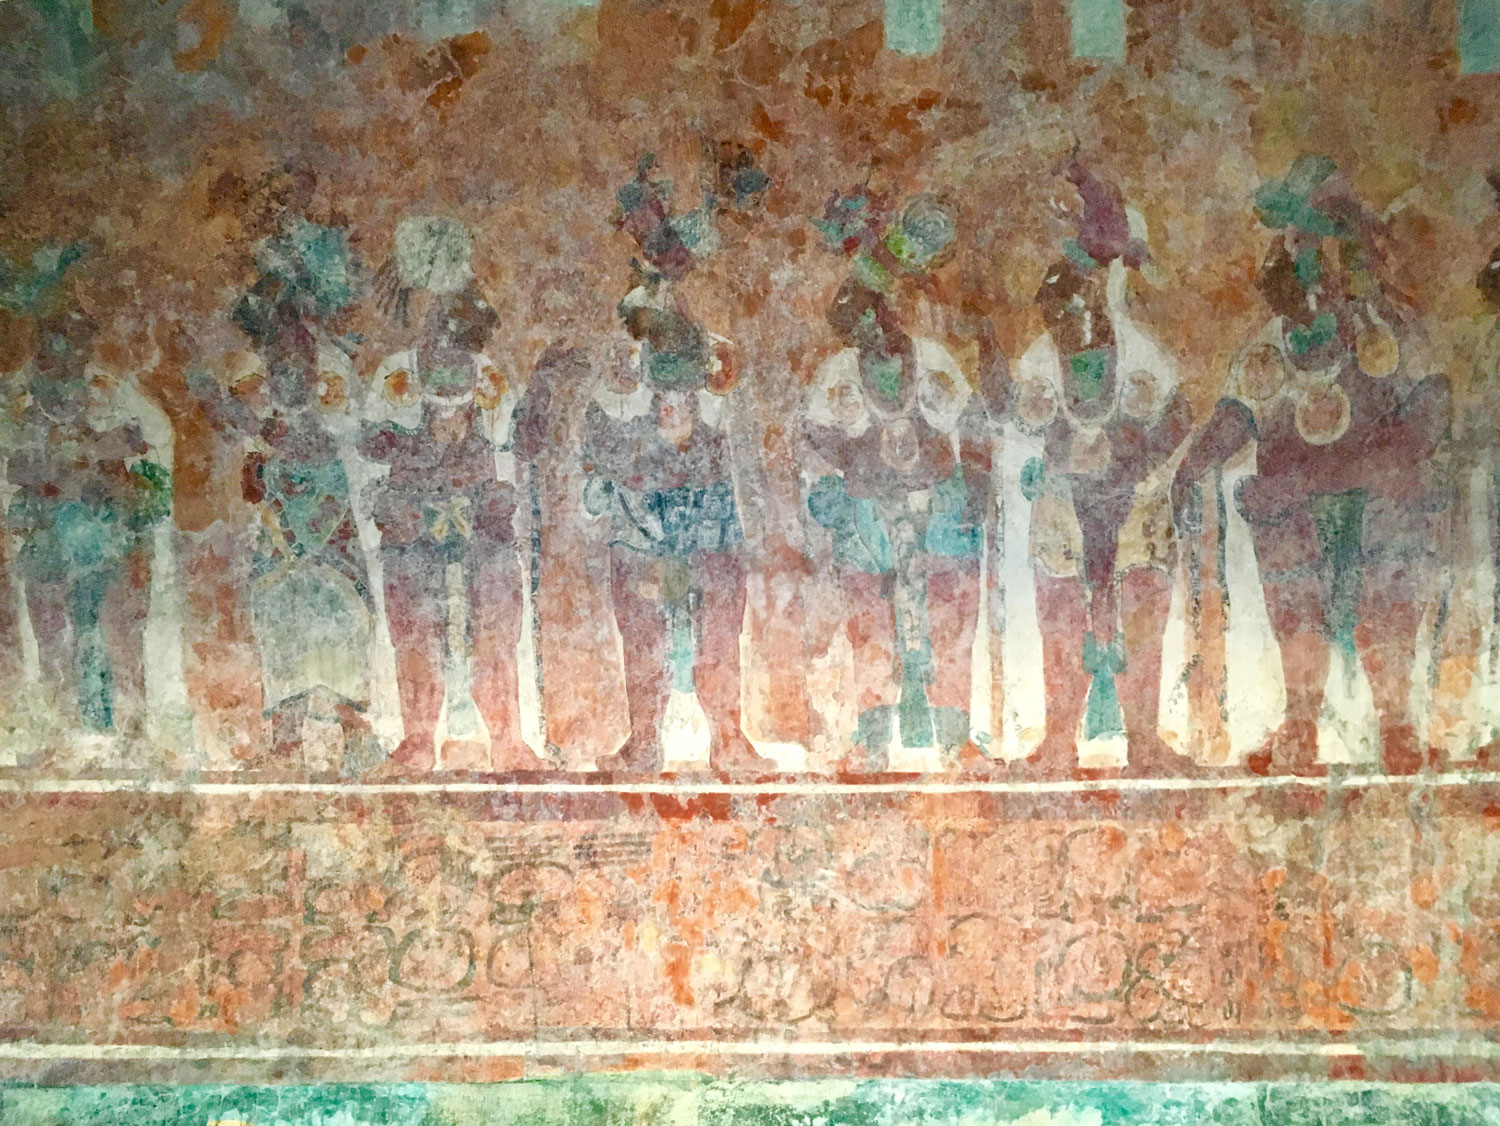 Stunning Bonampak murals: Procession of the lords. Although they were not direct ancestors of the Lacandón Maya, something tells me that the dress code of white tunics was copied from them by today's inhabitants of Lacandón jungle .